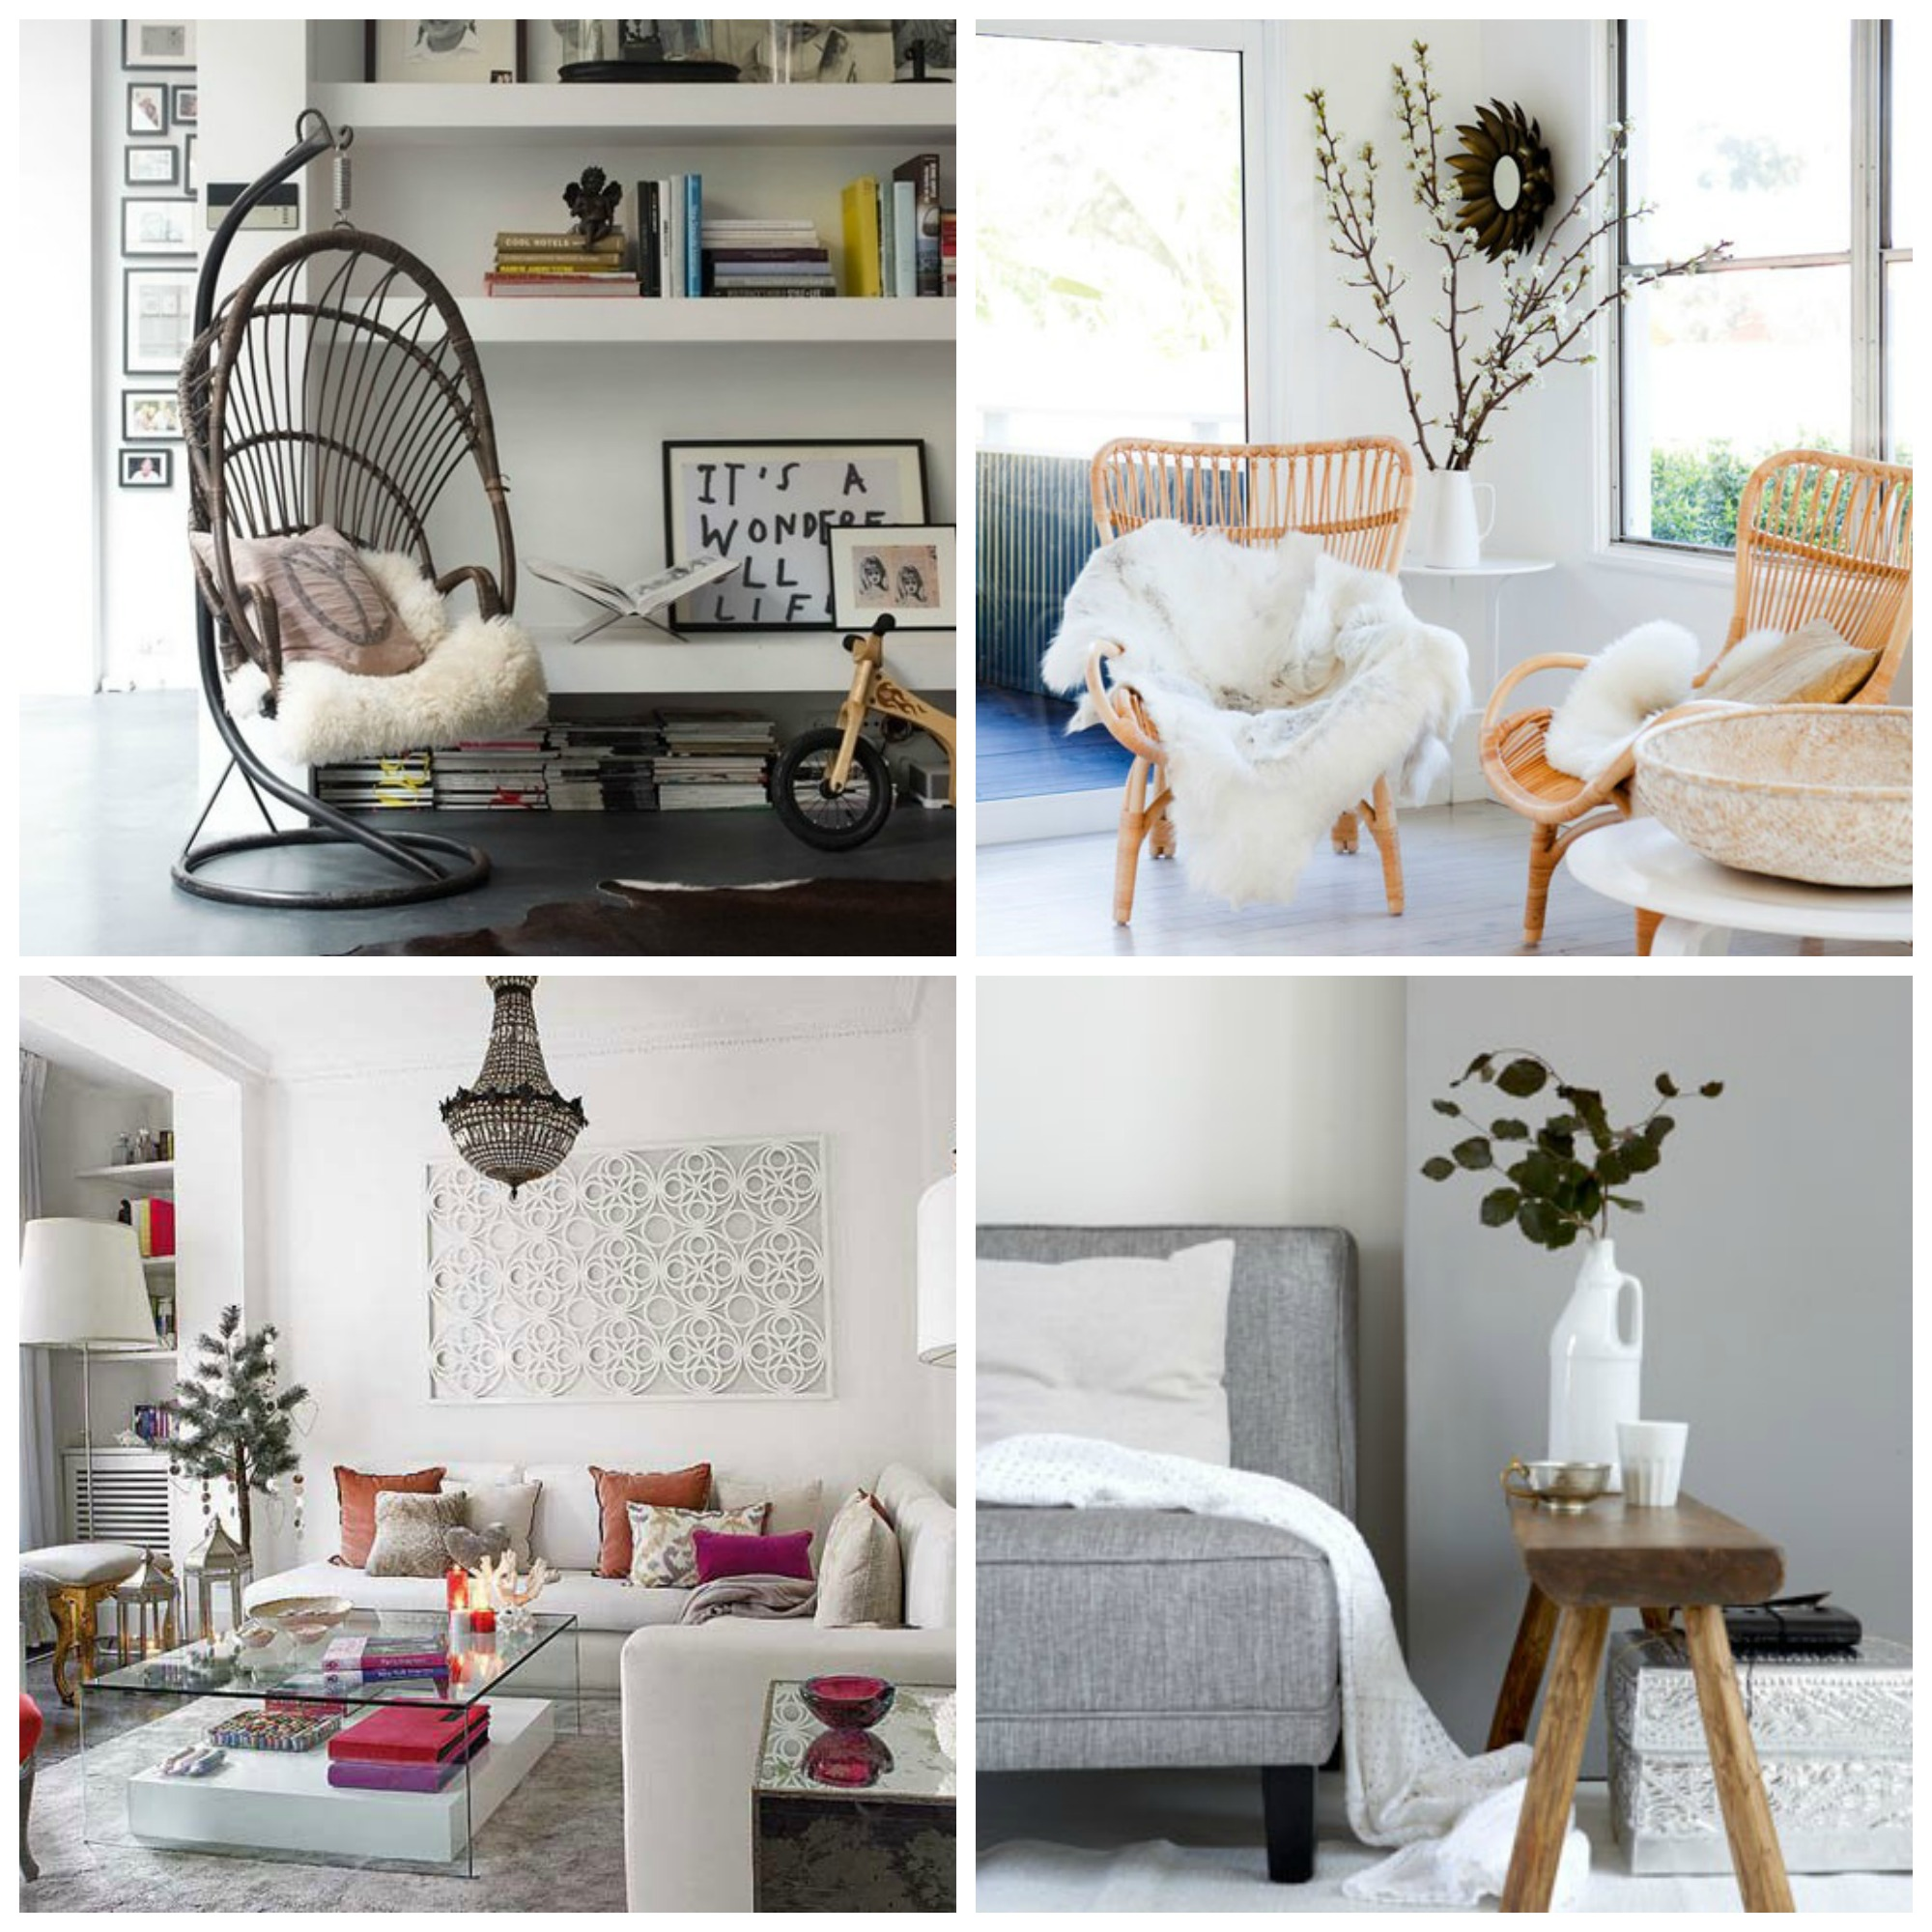 Salon cosy et moderne cocon de d coration le blog - Decoration cosy et idees creatives ...